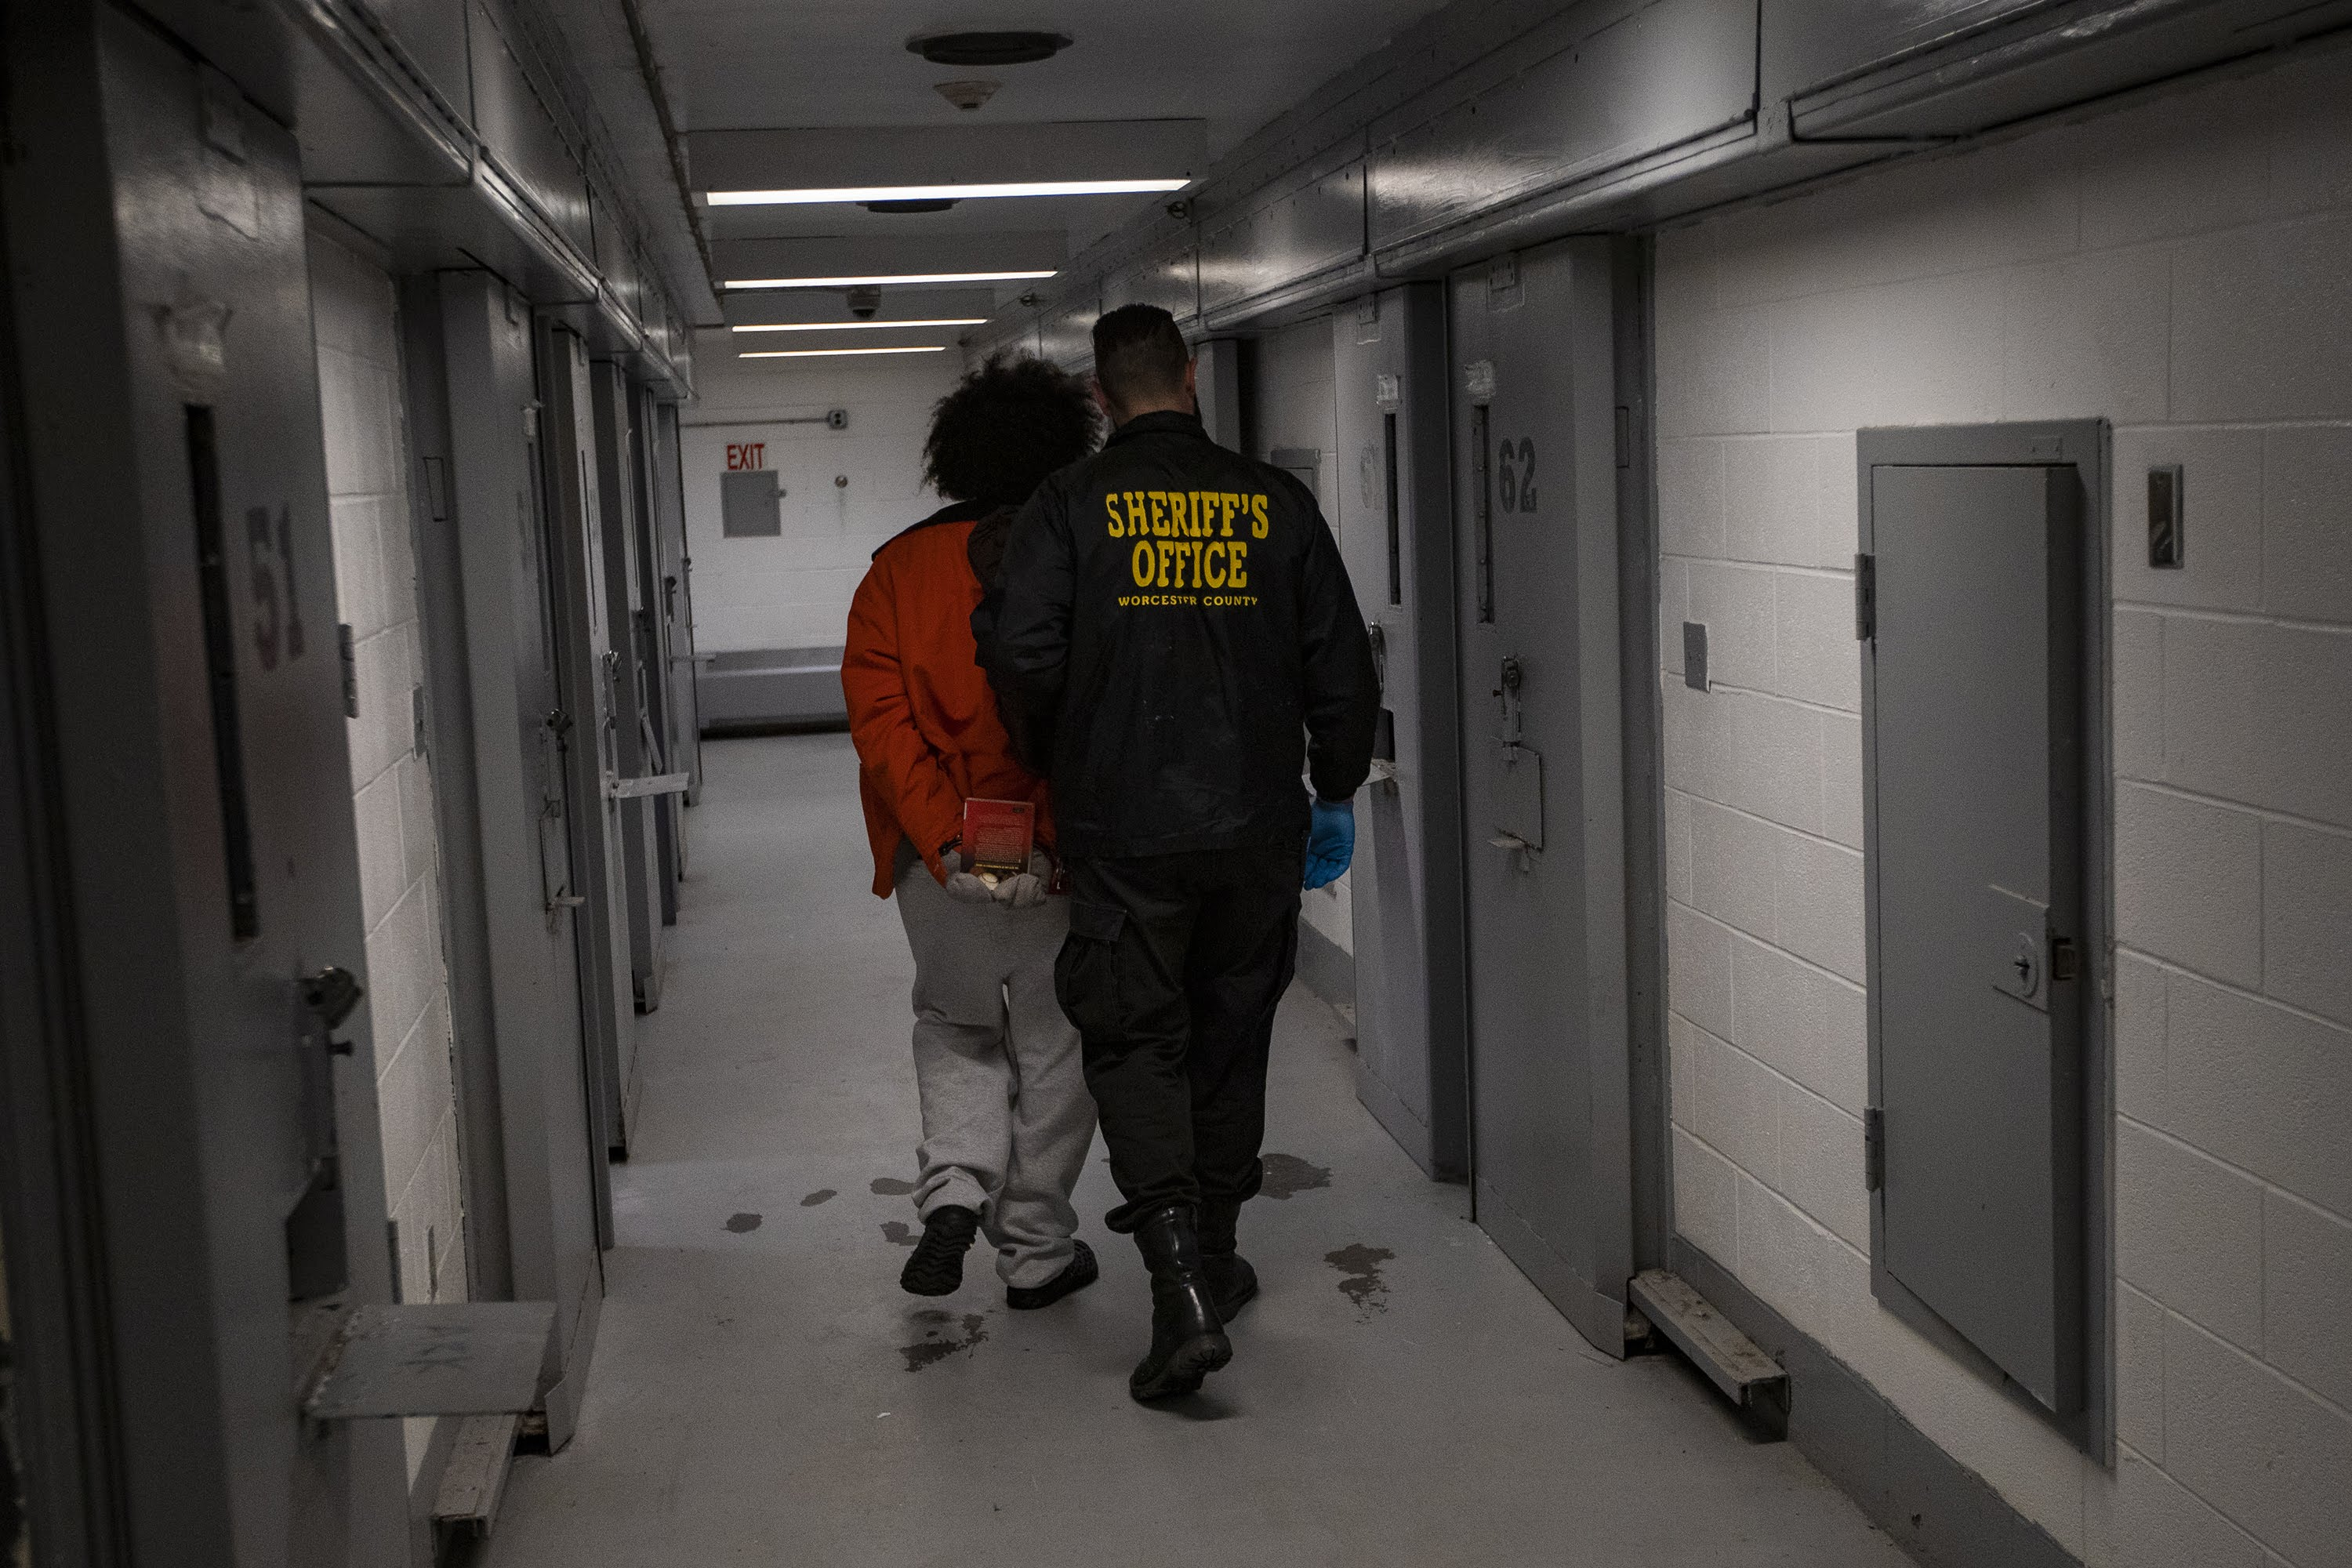 An inmate walks down a hallway inside the Worcester County jail. (Jesse Costa/WBUR)